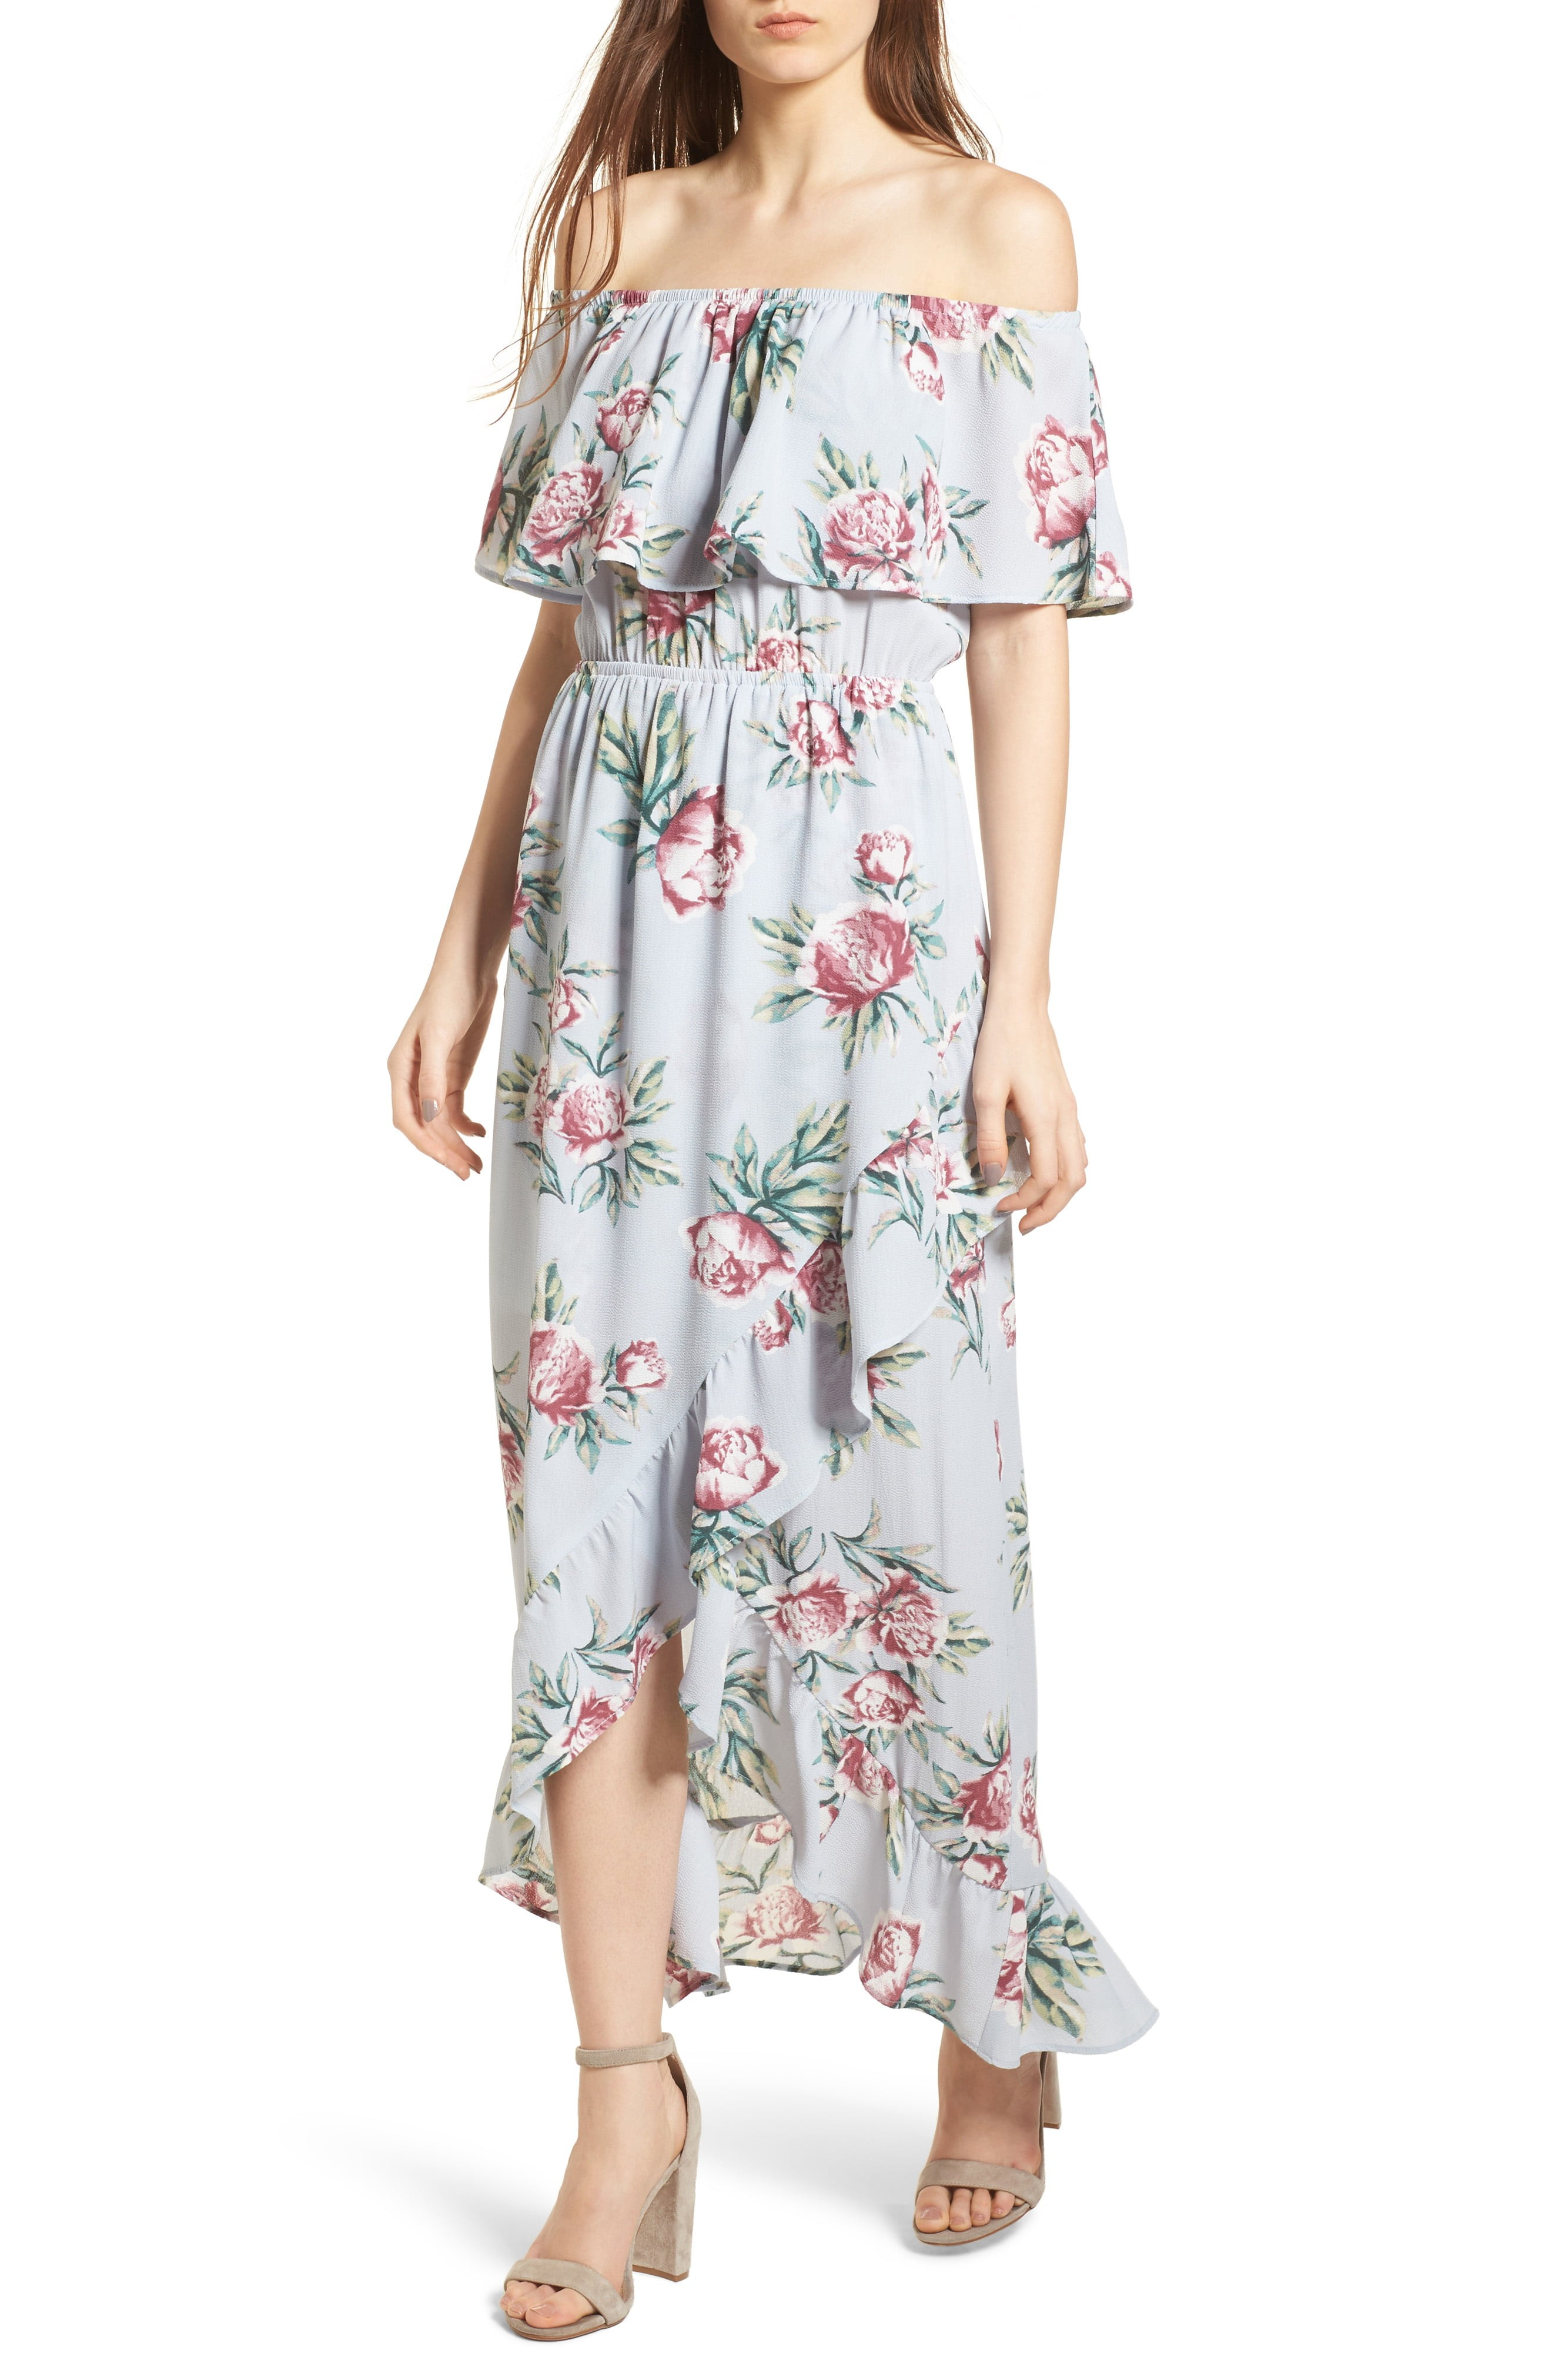 Spring Wedding Guest Dress Guide | Visions of Vogue